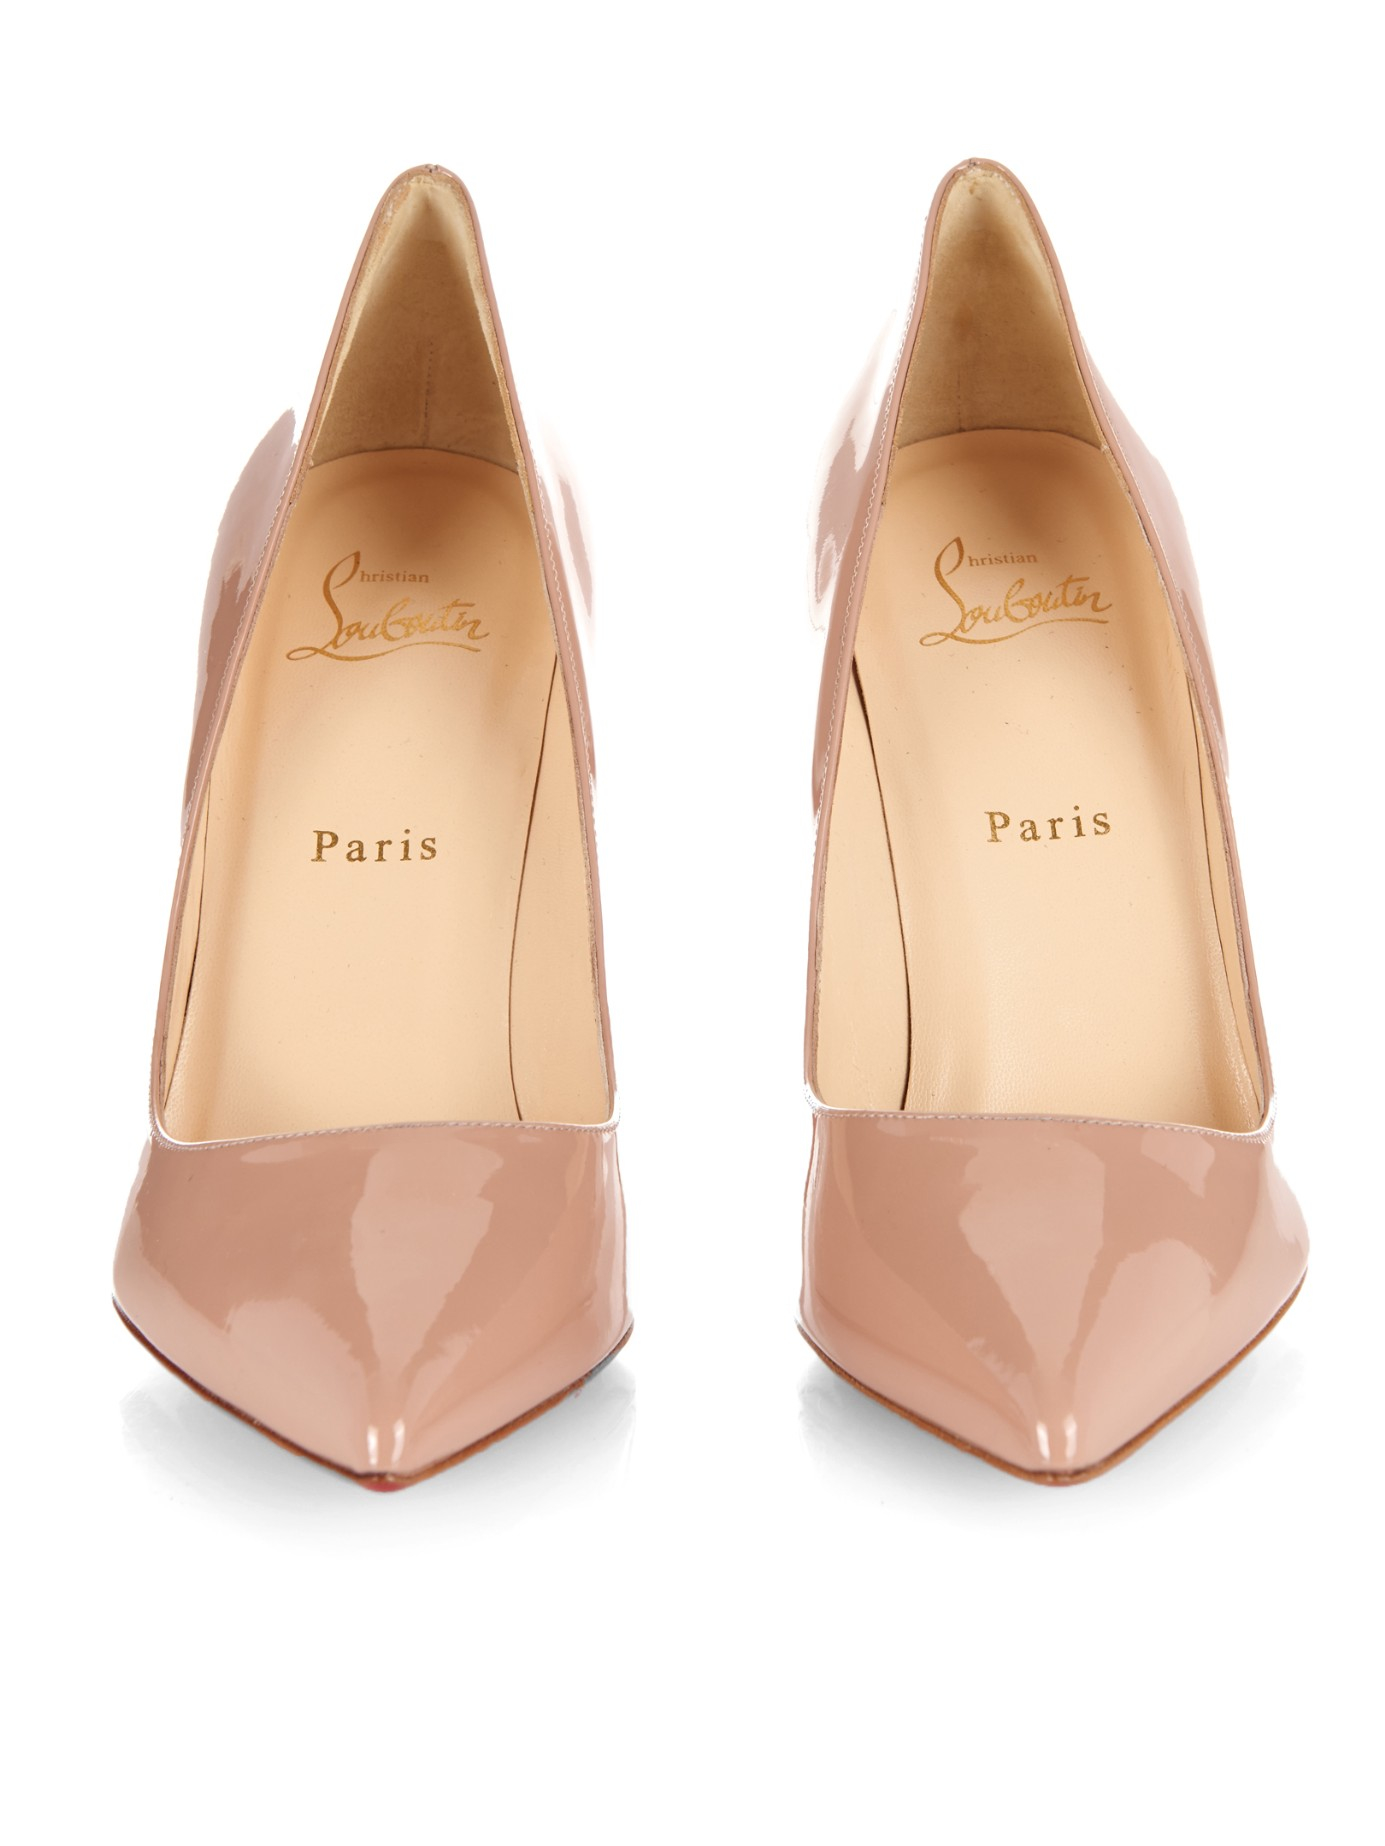 shoes corneille christian louboutin; gallery